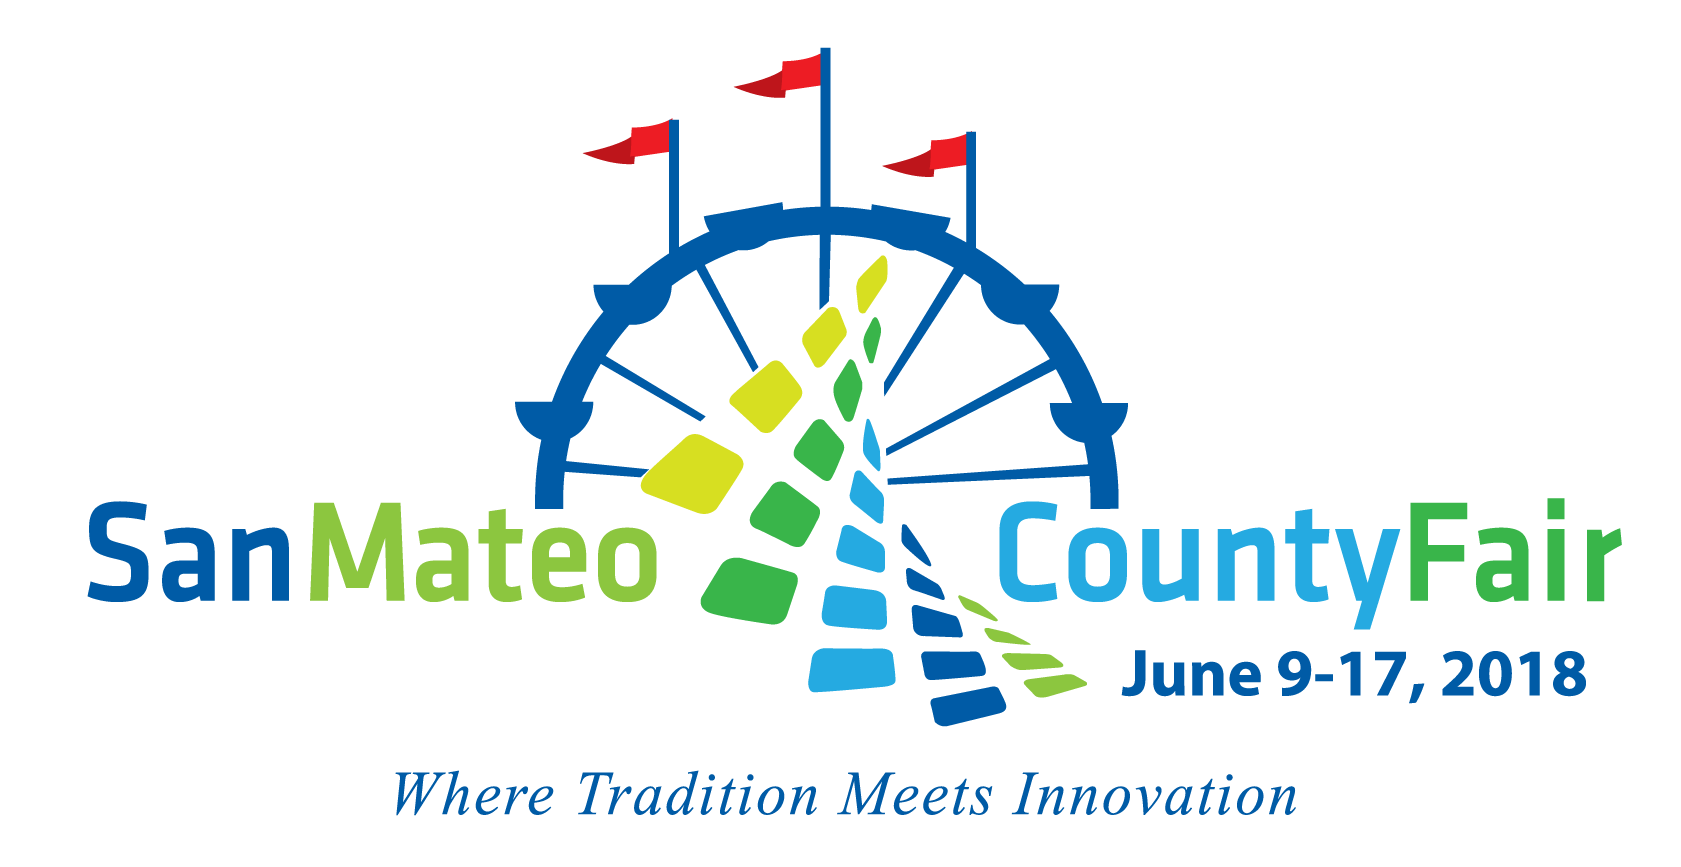 San Mateo County Fair Logo